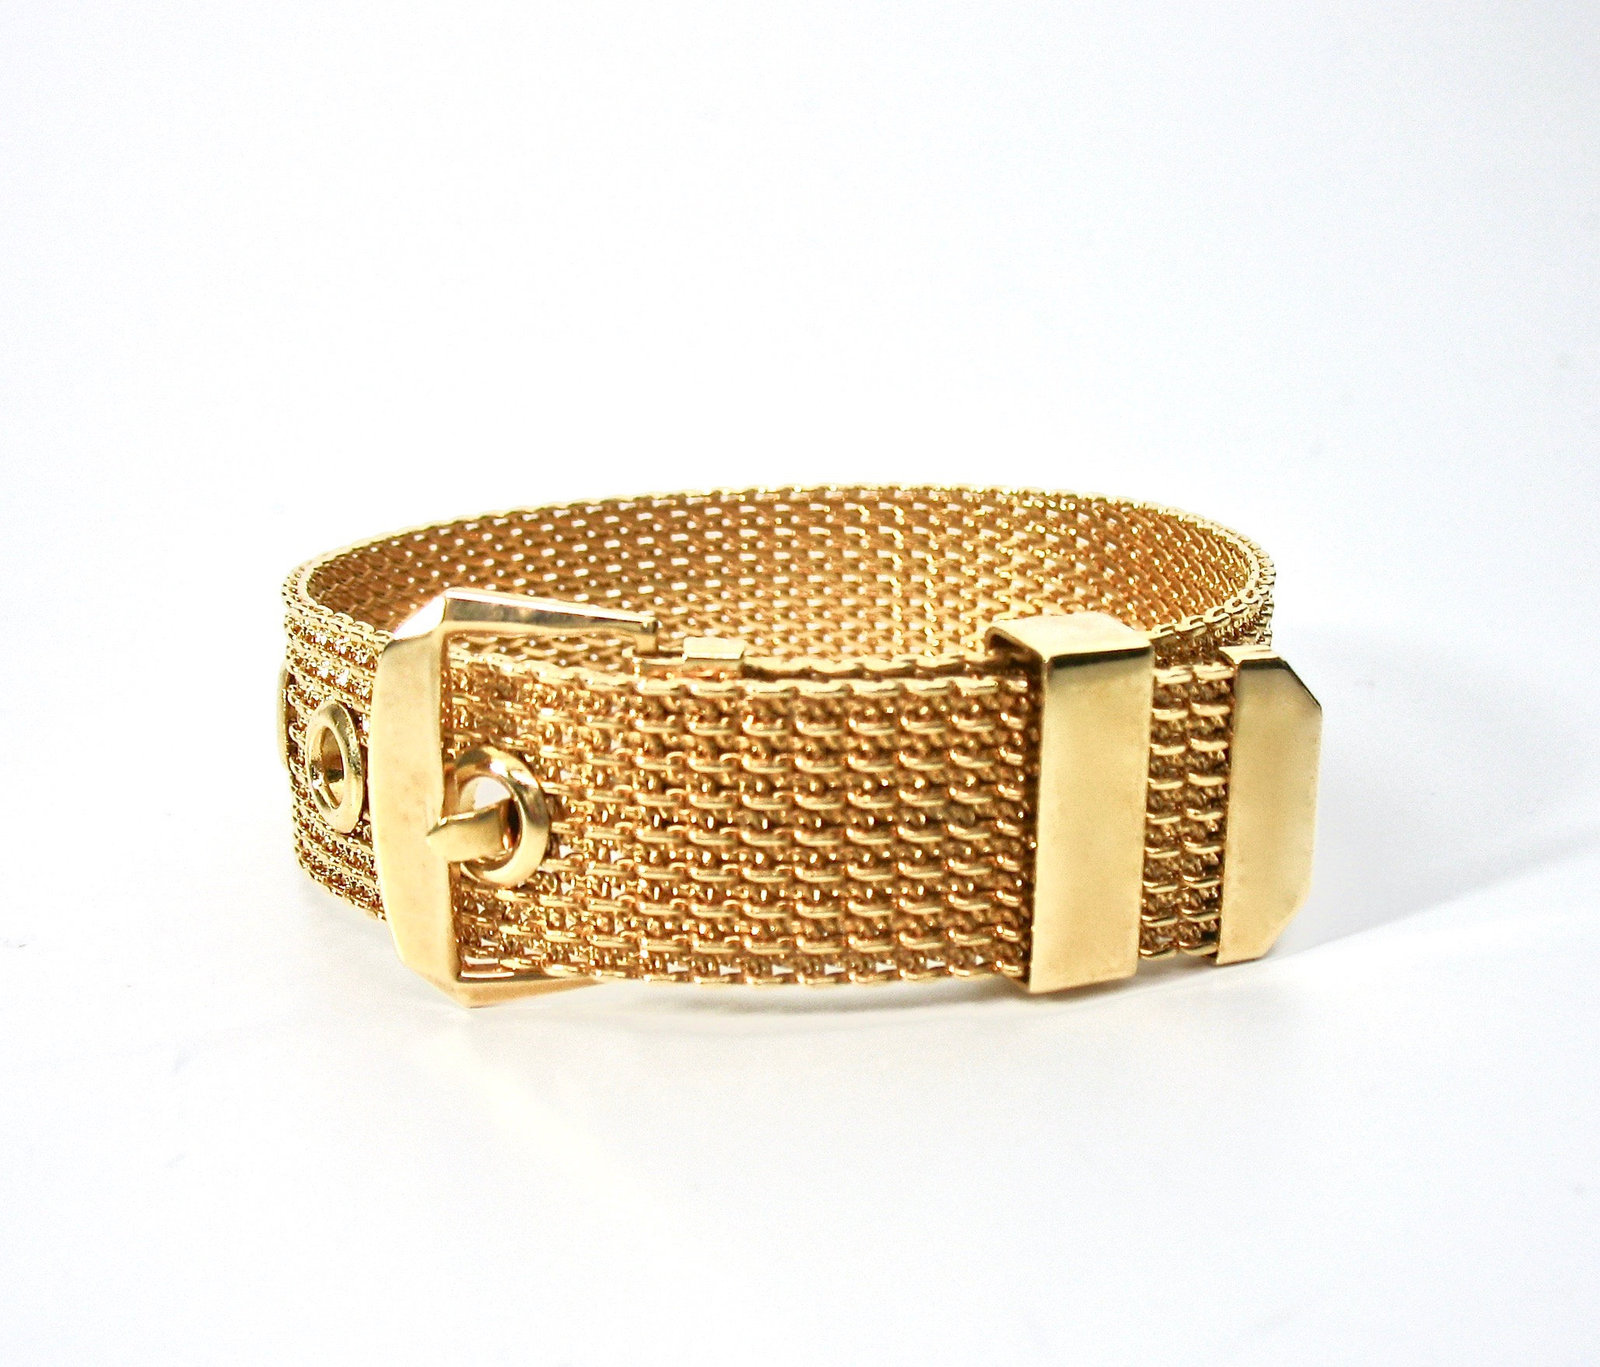 Mesh Buckle Bracelet, Gold Tone, Avon, 1970's, Adjustable, Signed Collectible, D image 4